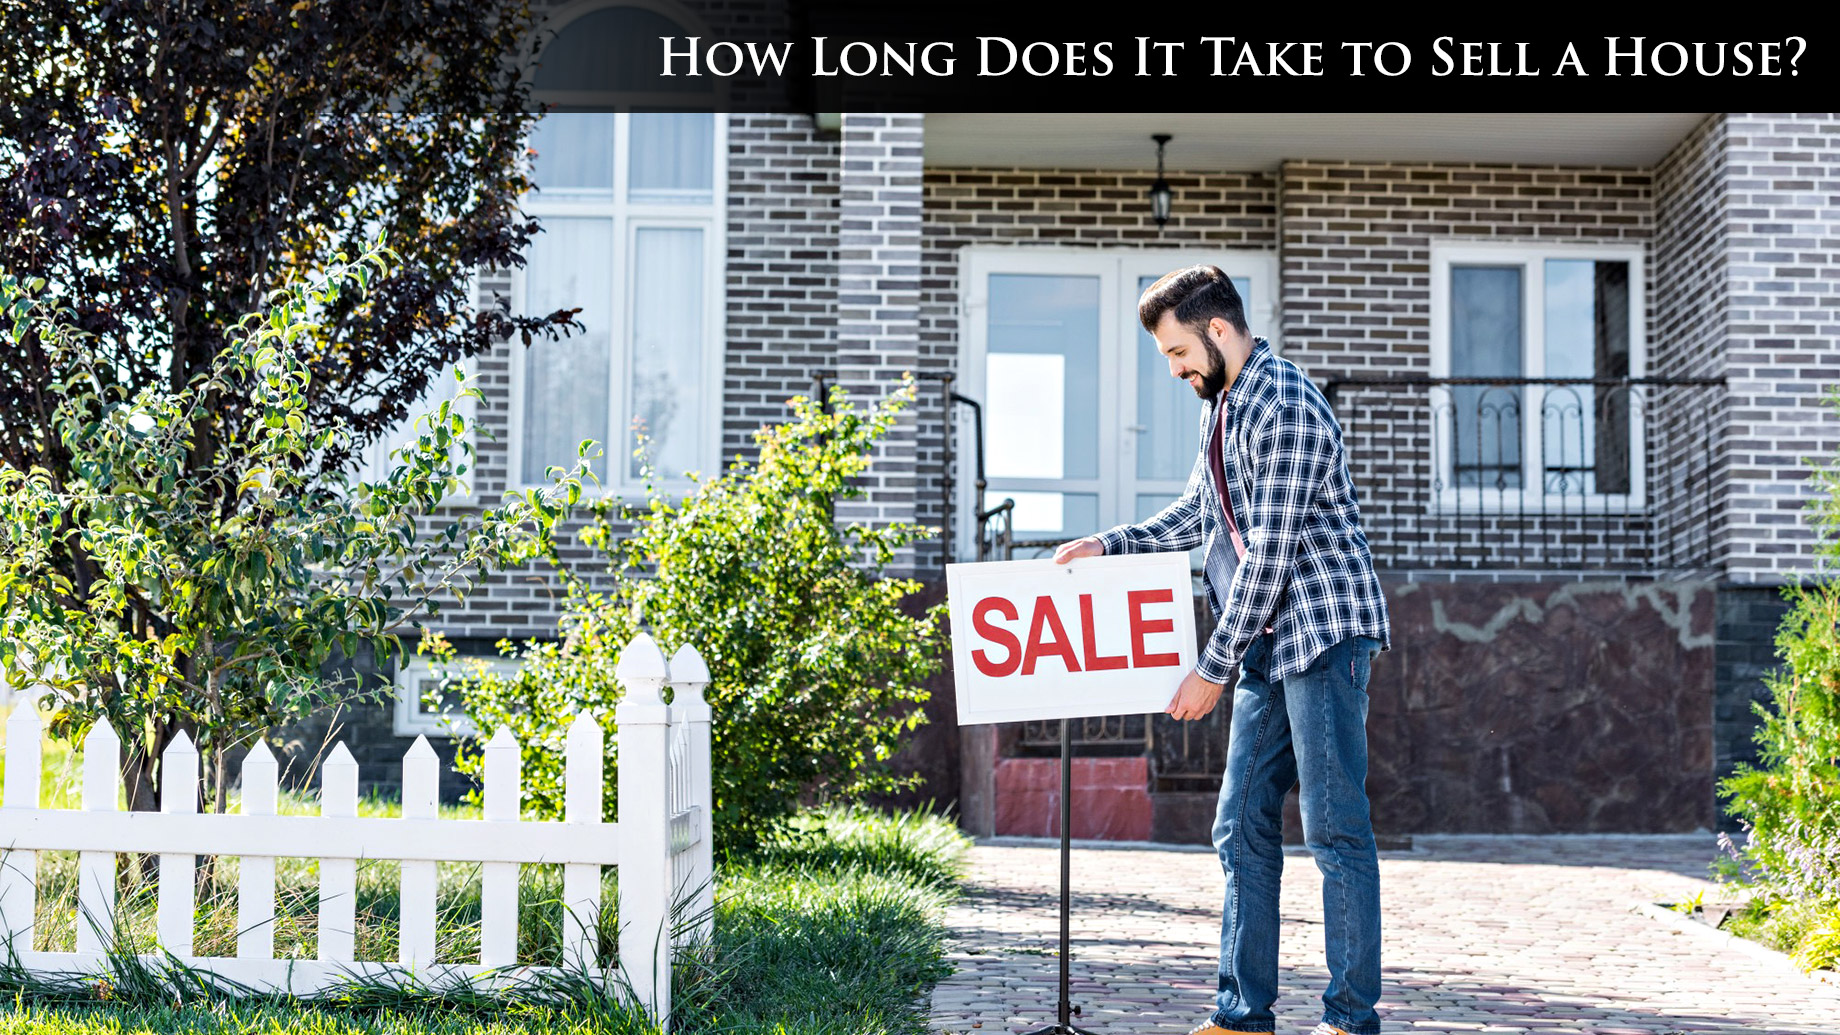 How Long Does It Take to Sell a House?